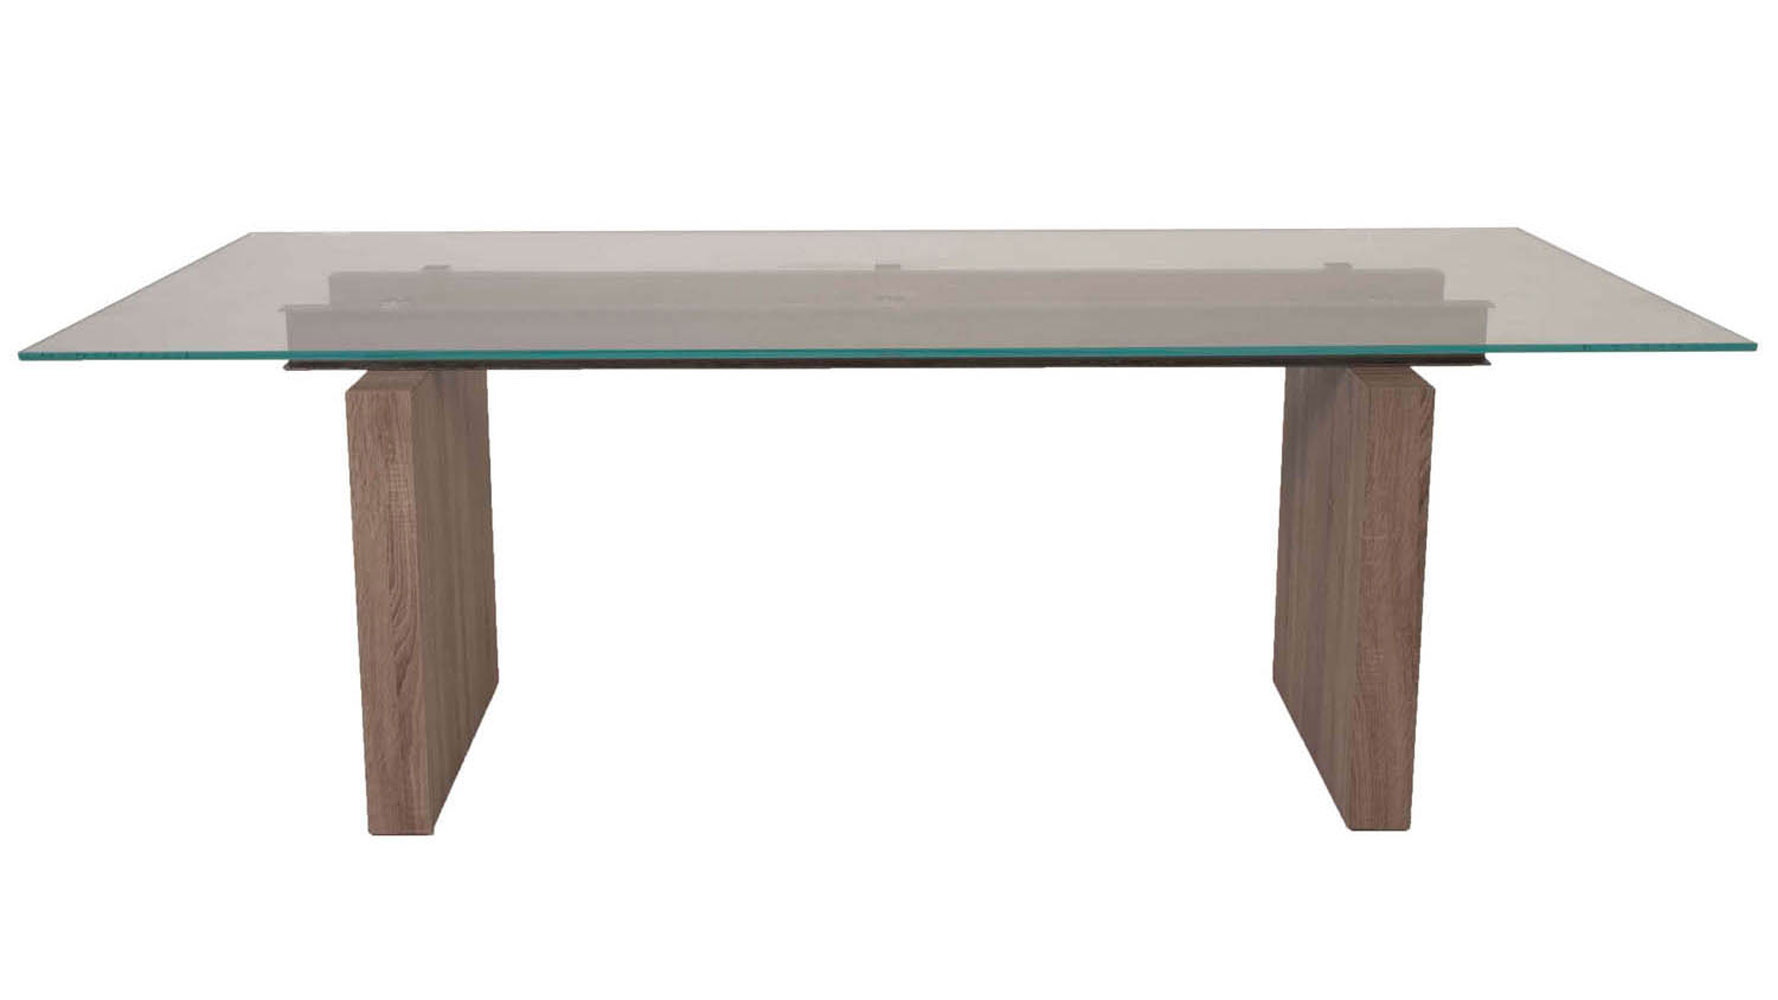 Soothing Trestle Table Driftwood Base Tempered Super Clear Glass Zuri Furniture Trestle Table Driftwood Base Tempered Super Clear houzz-03 Trestle Dining Table